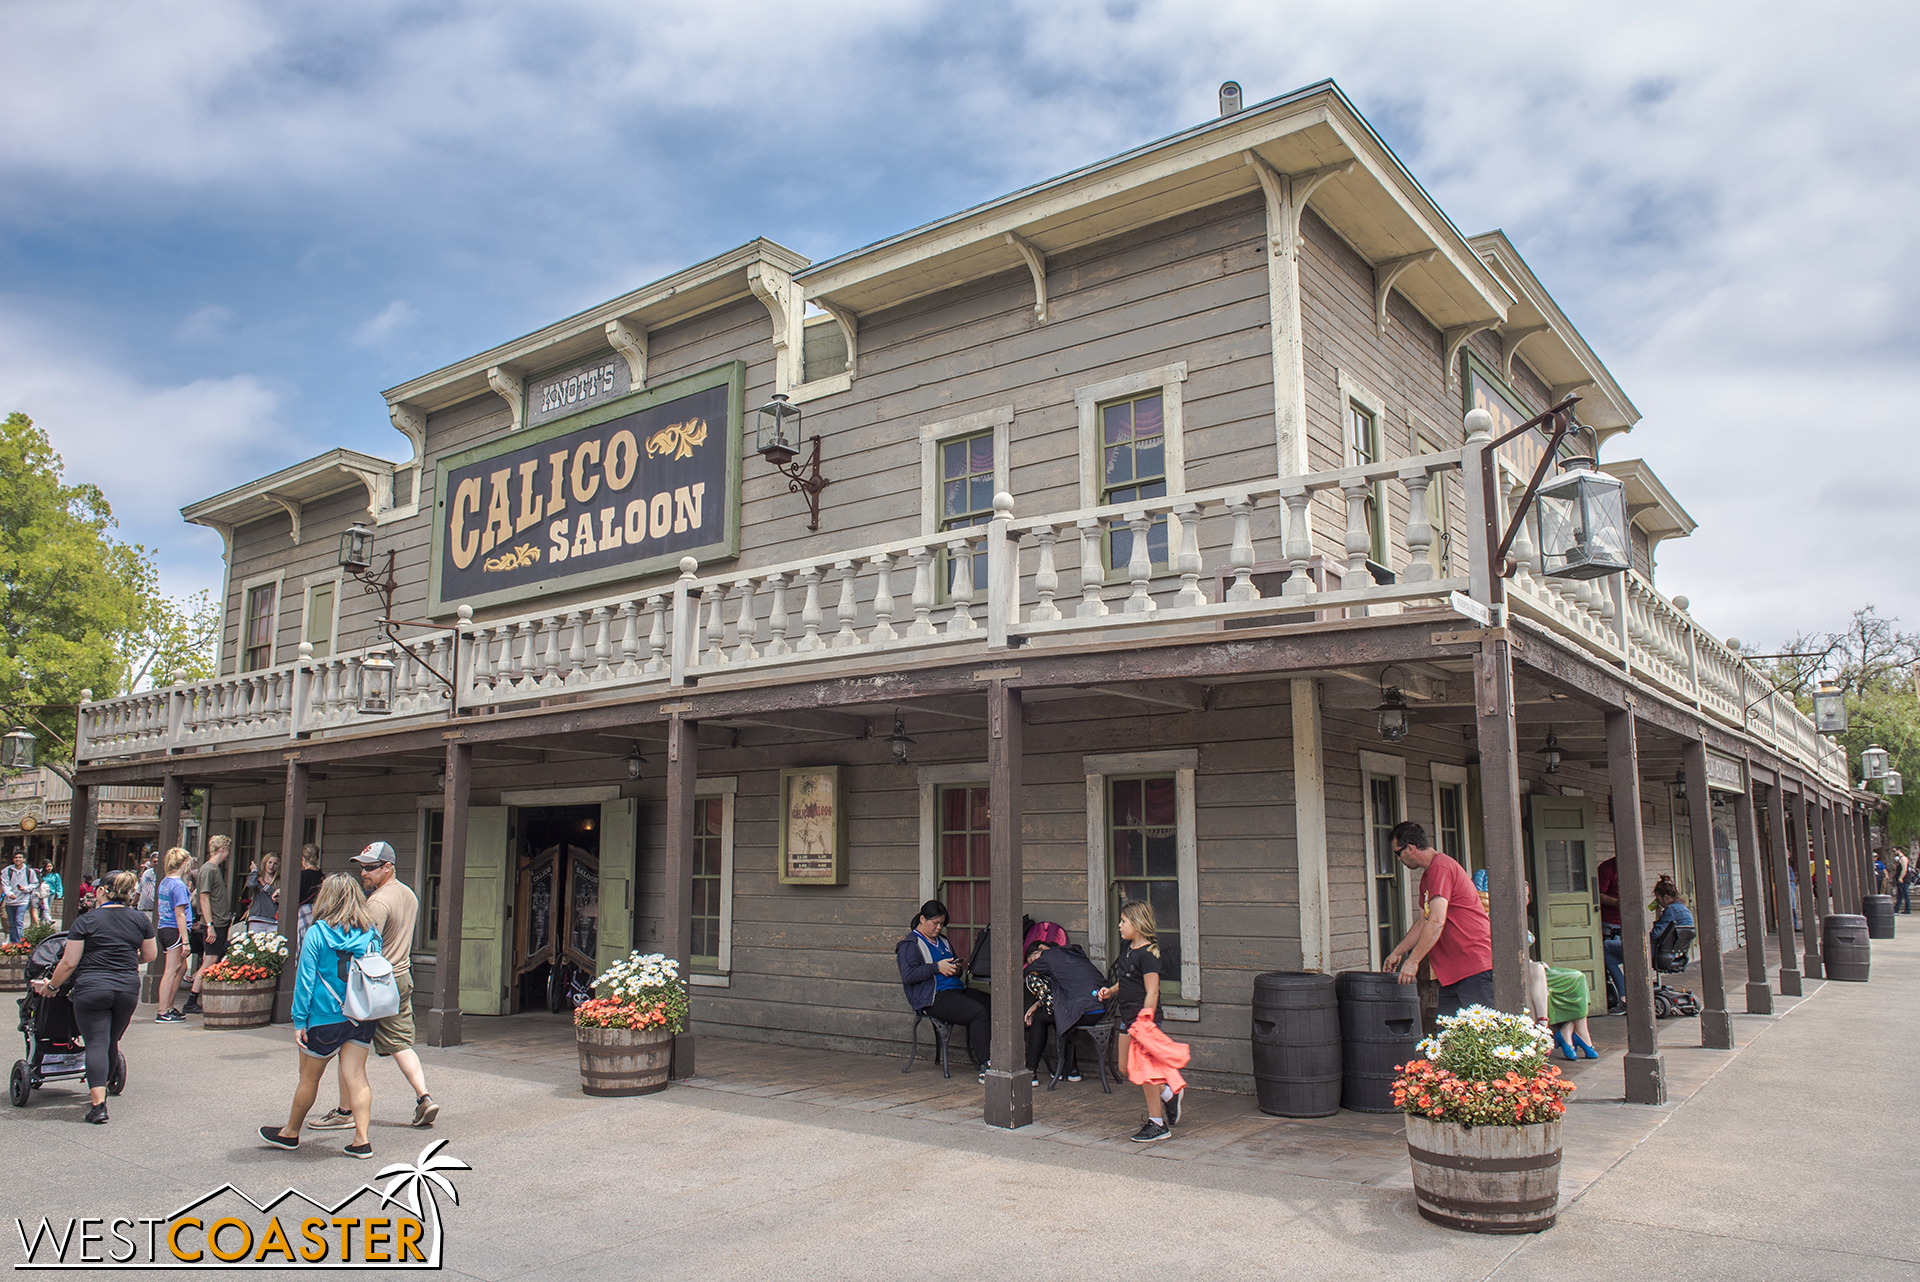 The Saloon plays host to an exciting shootout scene, just as it has in previous Ghost Town Alive! seasons.